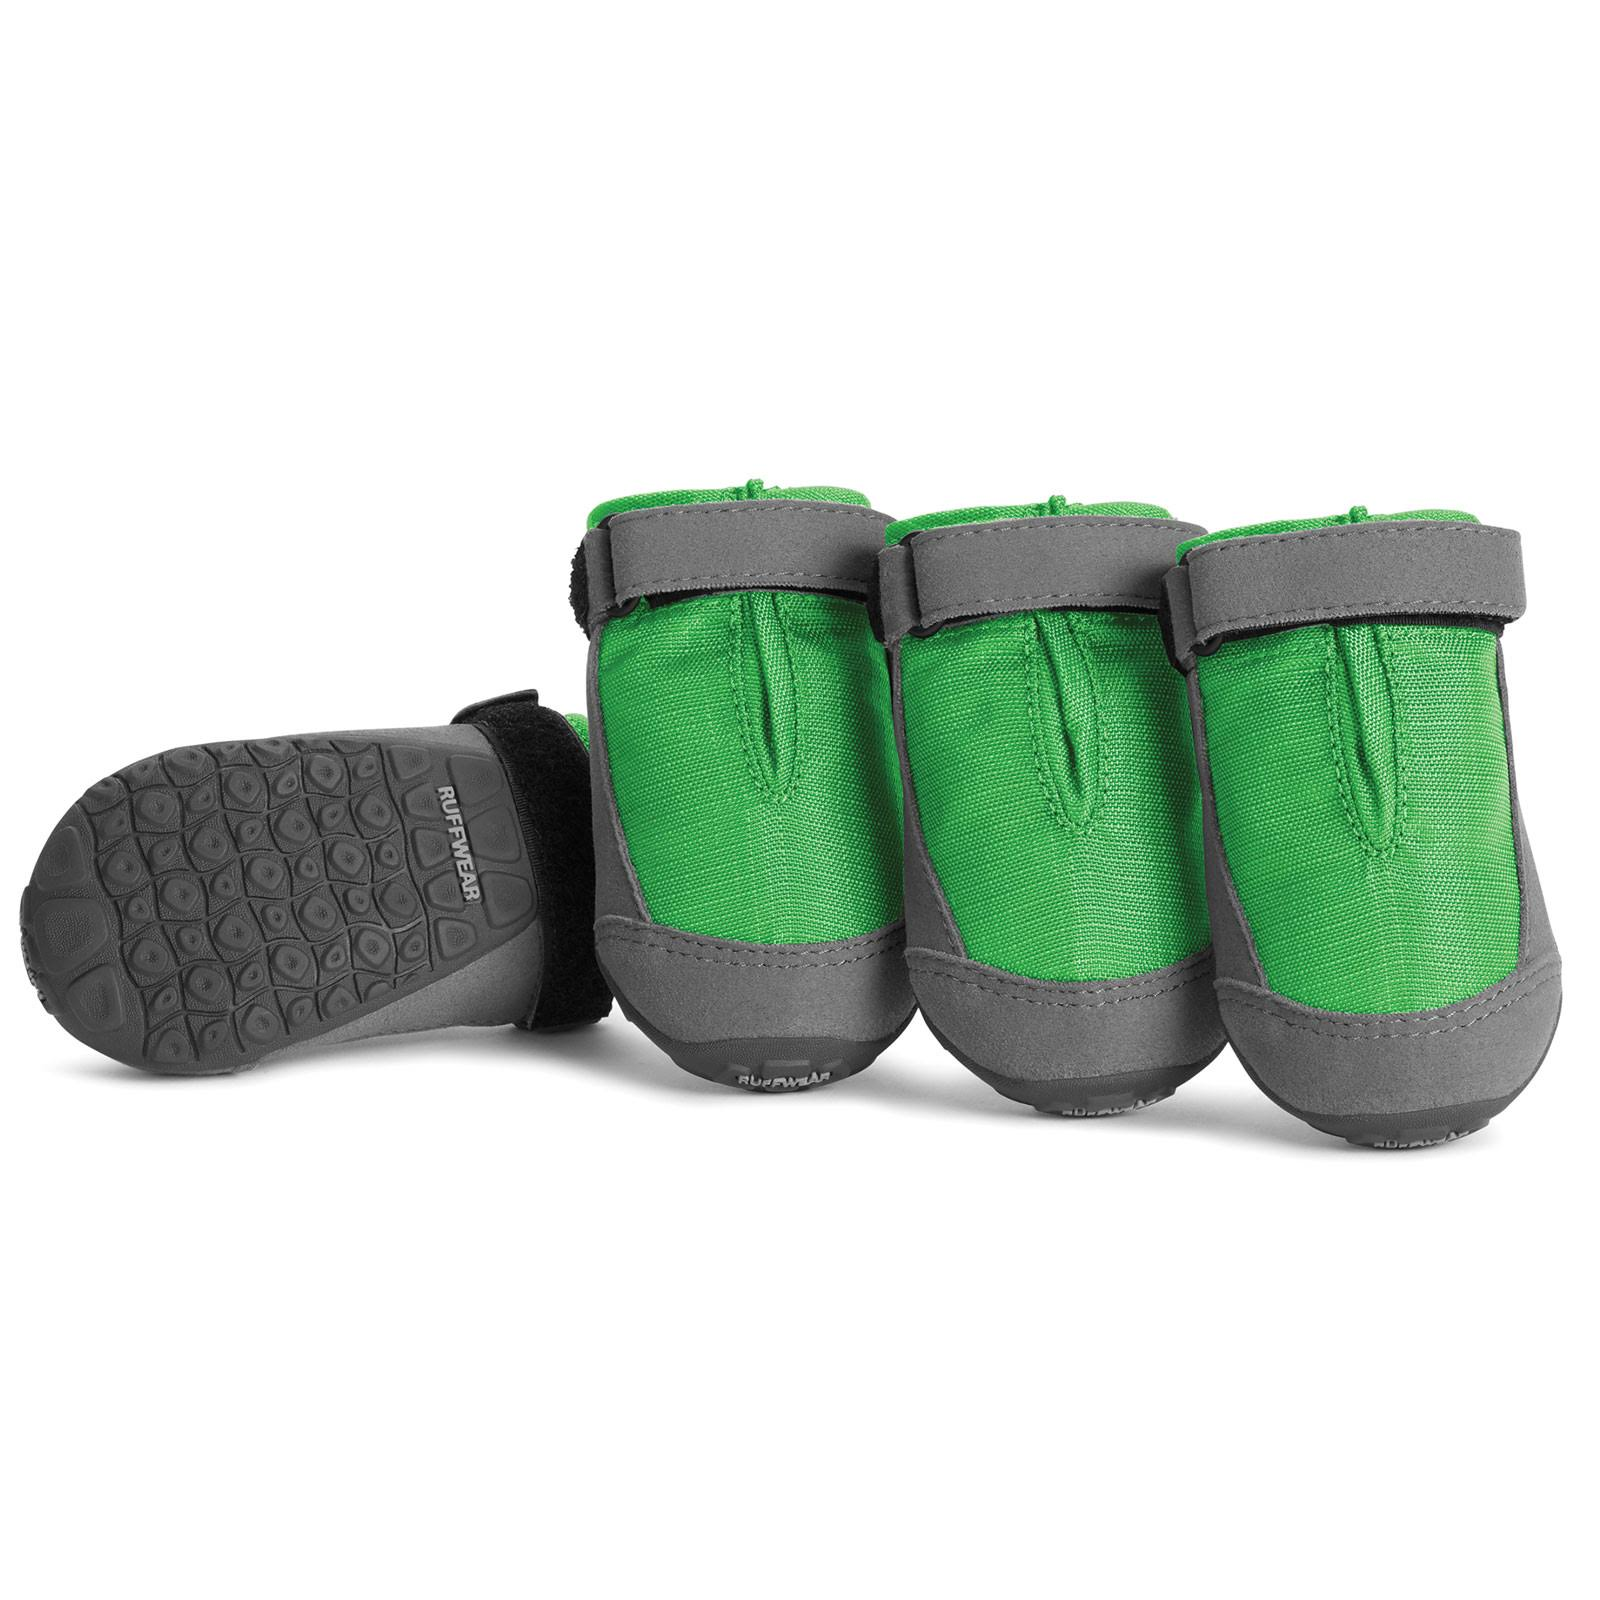 Ruffwear Summit Trex Dog Boots - Meadow Green, 3""